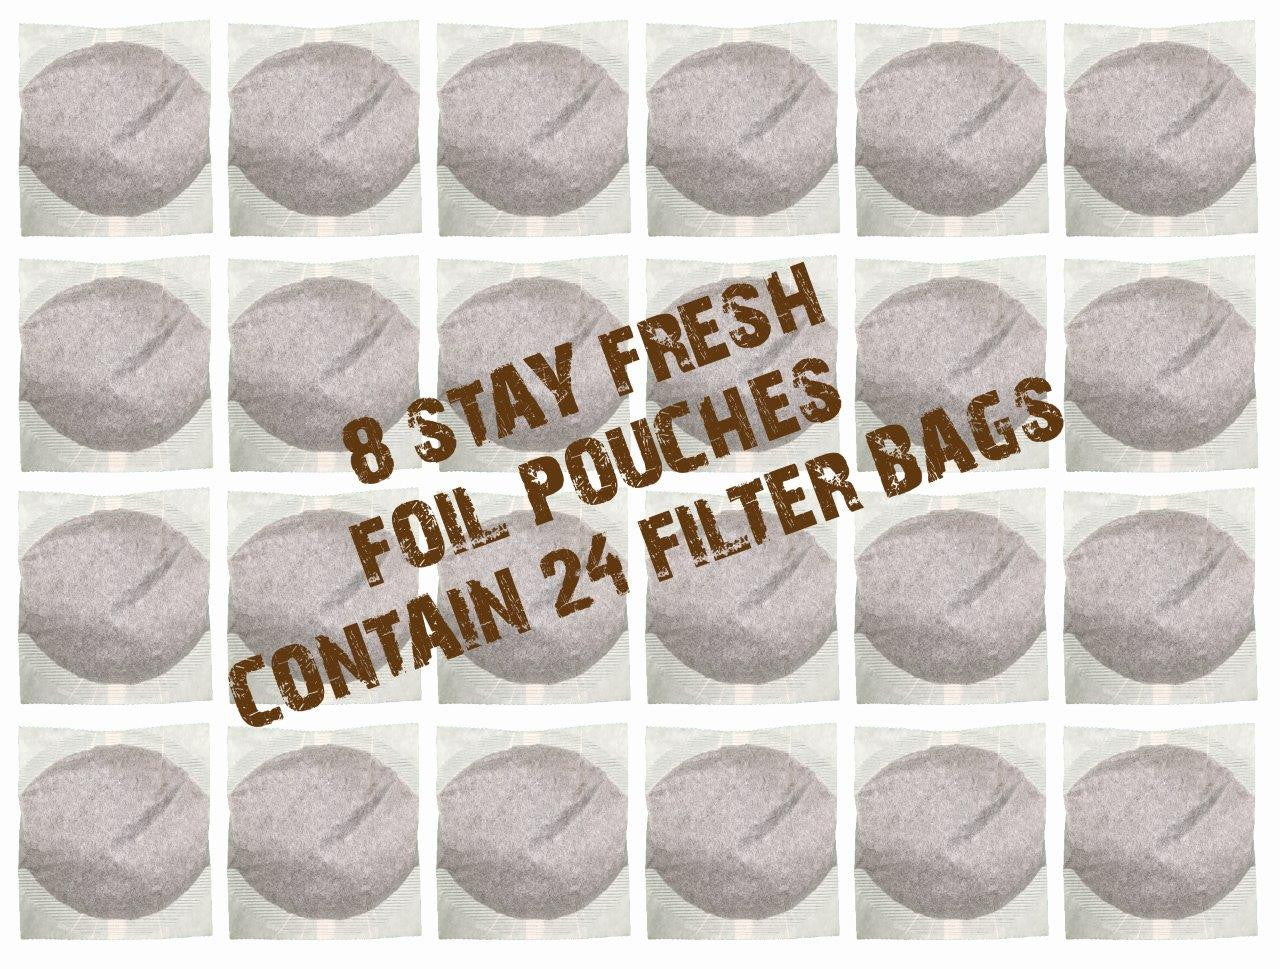 8-Pack (24 filter bags) Subscribe & Save